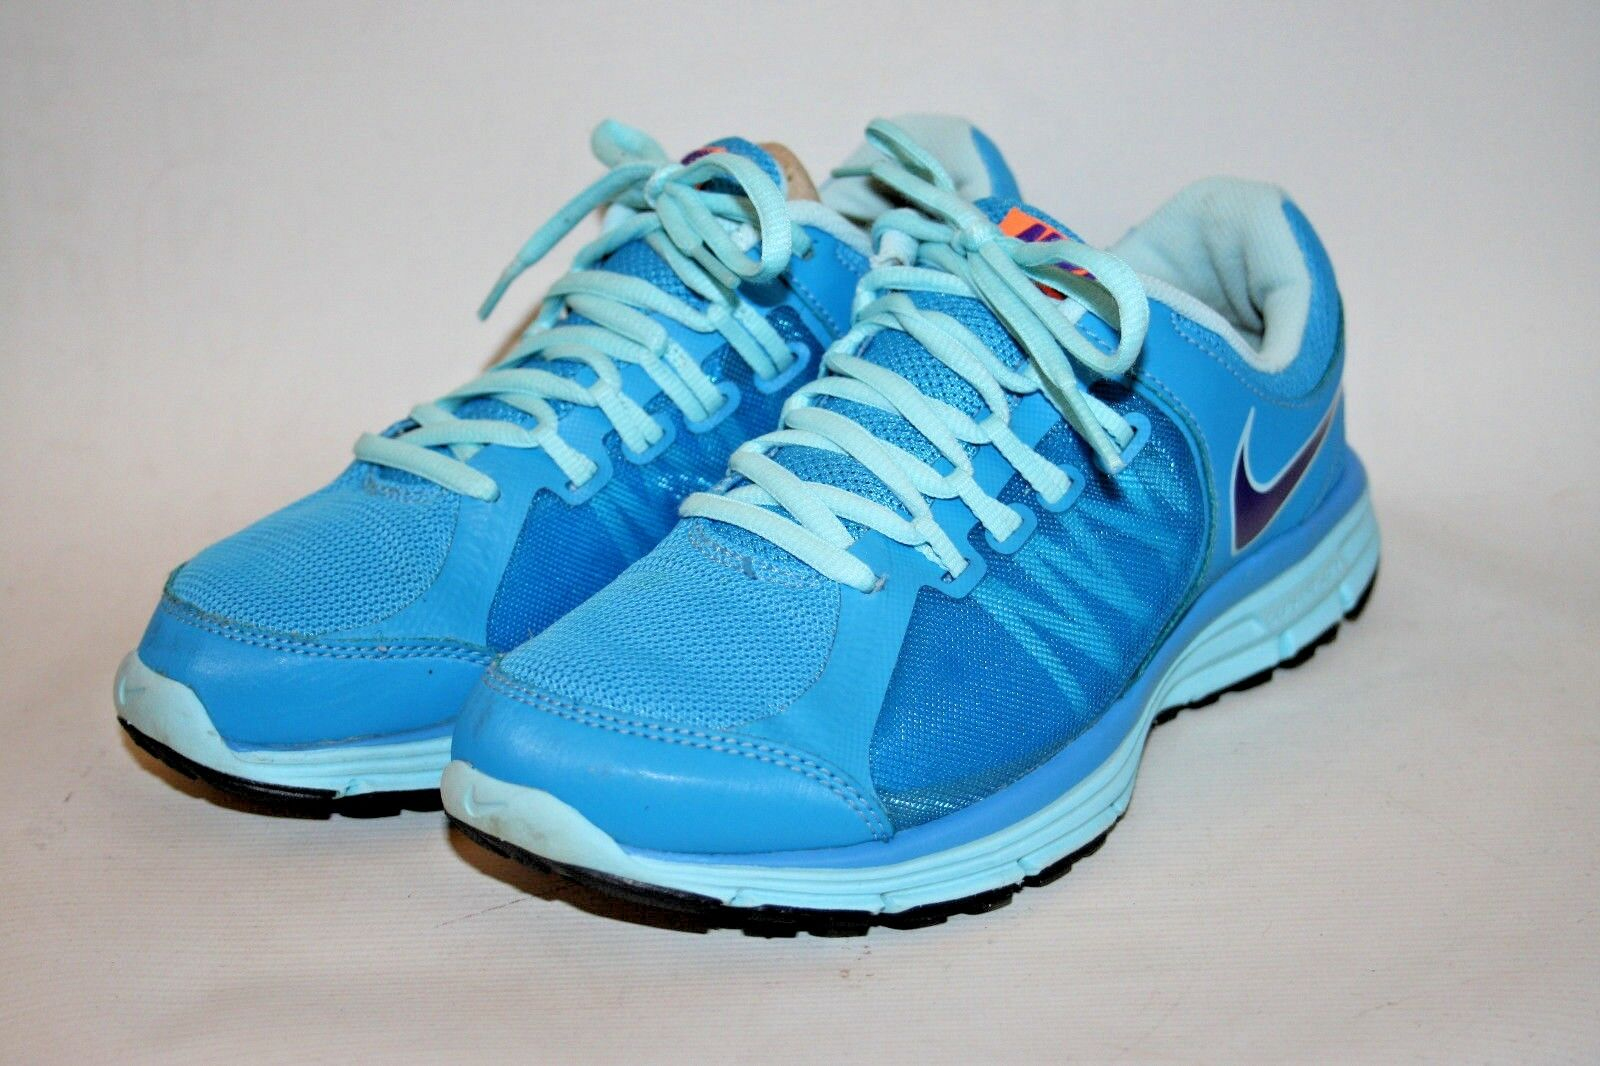 Nike Unisex Lunarlon Lunar Forever 3 Shoes Womens Unisex Nike Running Trainers Gym Blue 2e8ae7